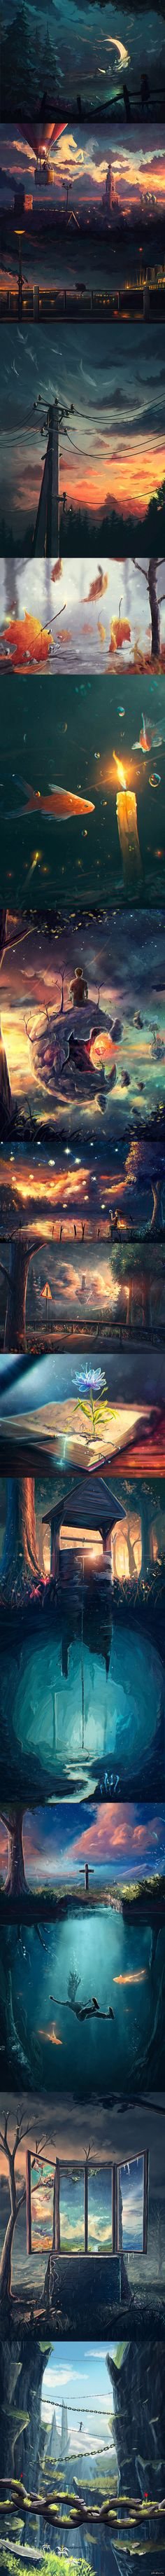 I kind of like the illustration created by combining the and visual in the same time. It gives people a different feeling because it not only containing the flat or complicated elements but it was combined in such a nice balance. Fantasy Landscape, Landscape Art, Fantasy World, Fantasy Art, Gato Anime, 3d Drawings, Anime Scenery, Grafik Design, Art Plastique